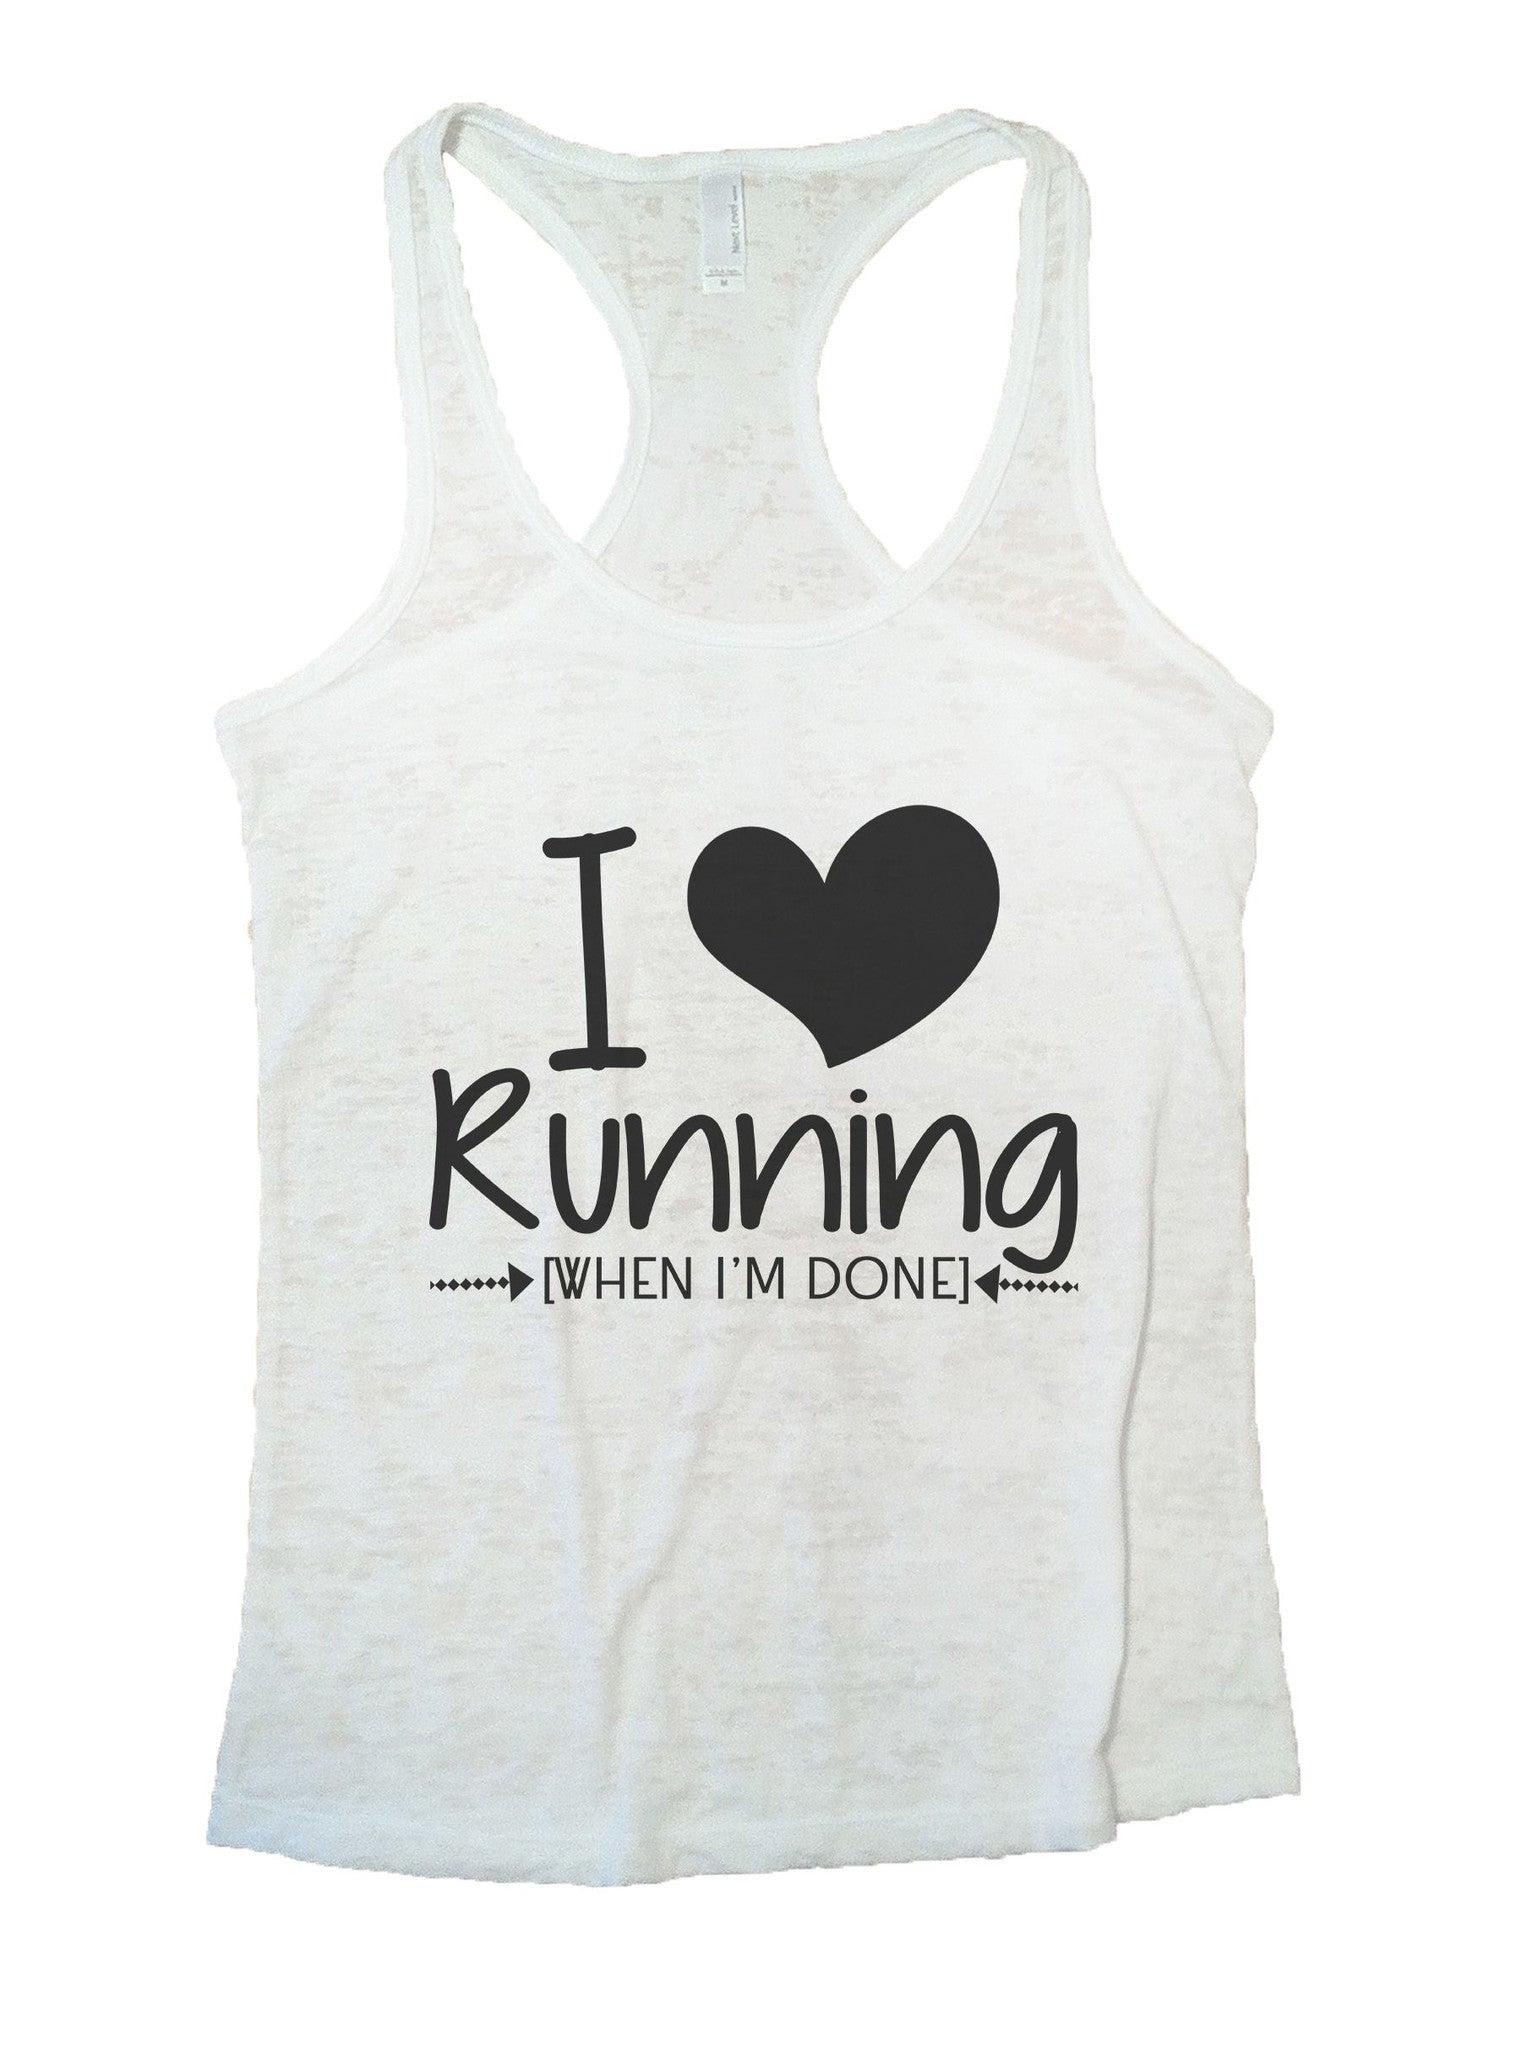 I Love Running [When I'm Done] Burnout Tank Top By BurnoutTankTops.com - 1013 - Funny Shirts Tank Tops Burnouts and Triblends  - 6